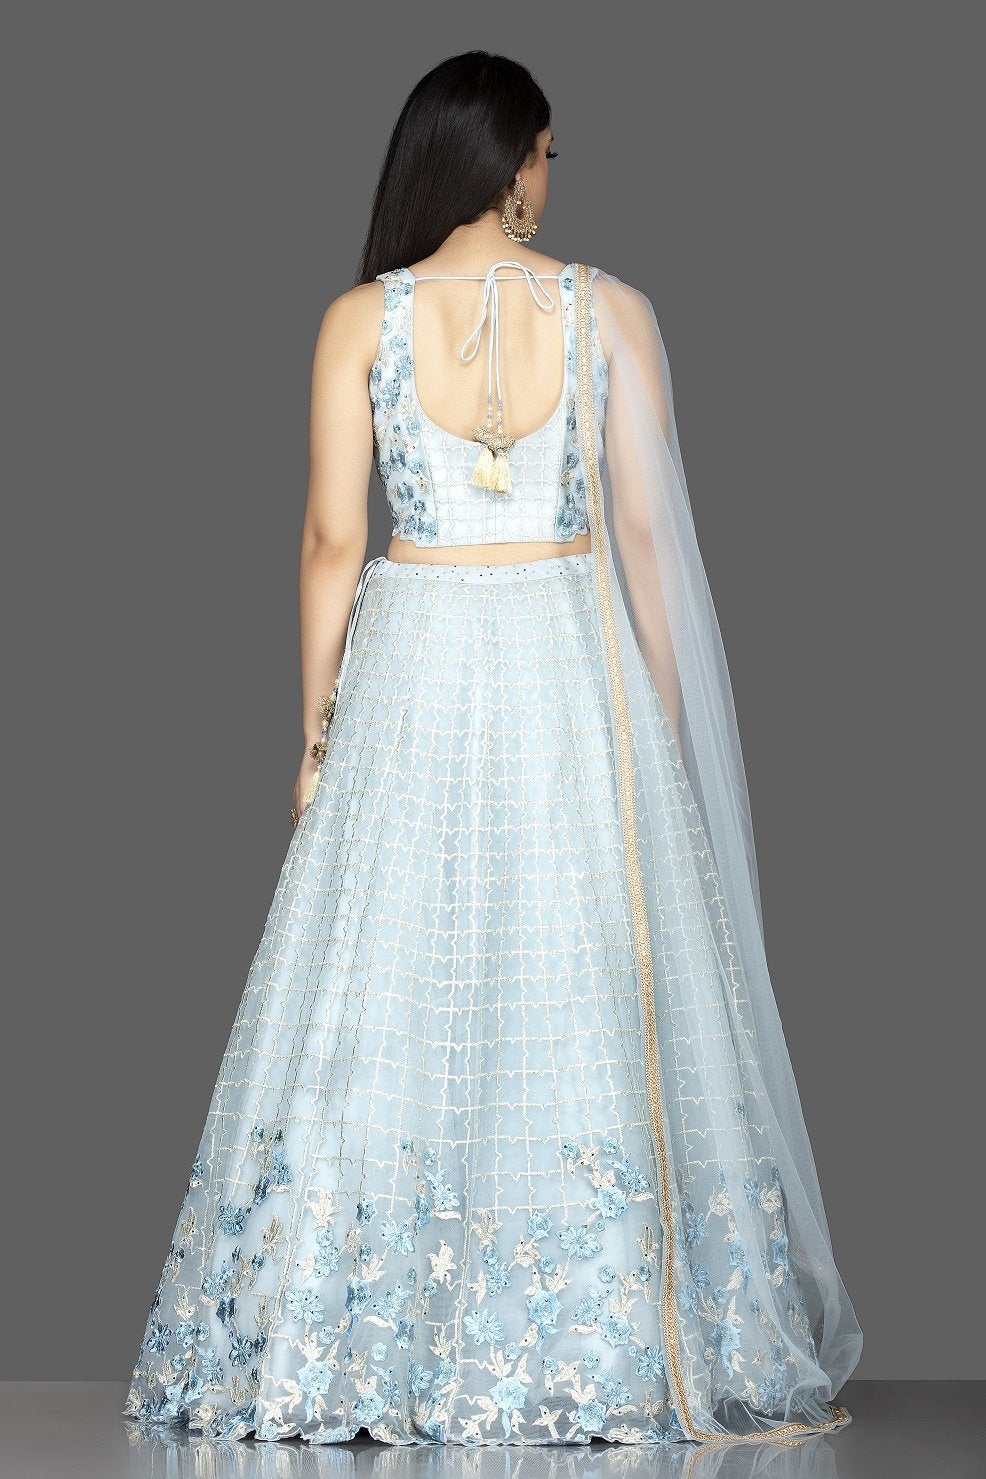 Buy beautiful powder blue embroidered designer net lehenga online in USA with matching net dupatta. Look radiant on weddings and special occasions in splendid designer lehengas crafted with finest embroideries and stunning silhouettes from Pure Elegance Indian fashion boutique in USA.-back